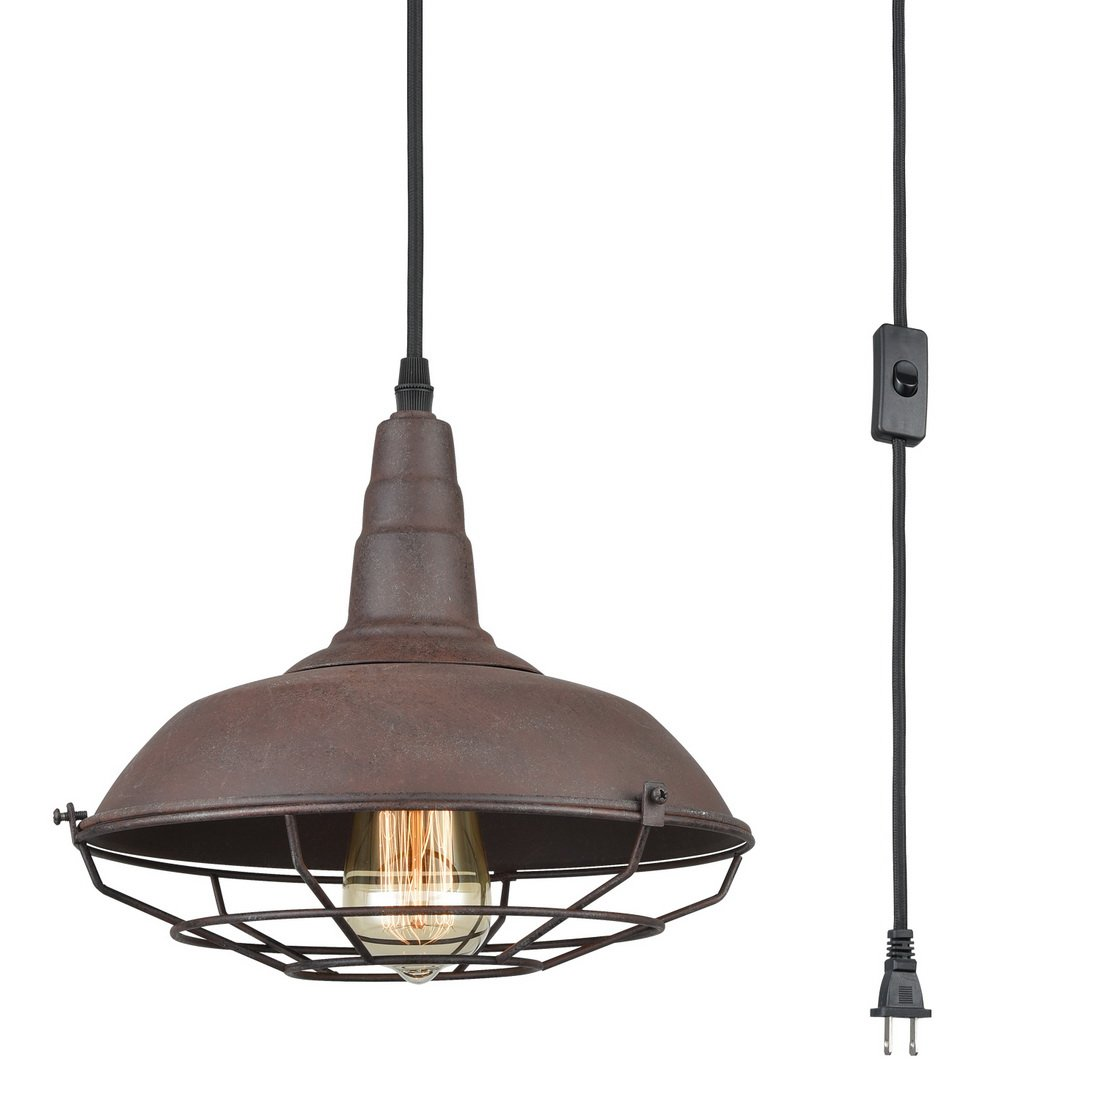 Axiland farmhouse industrial lighting fixture plug in pendant metal hanging lights amazon com